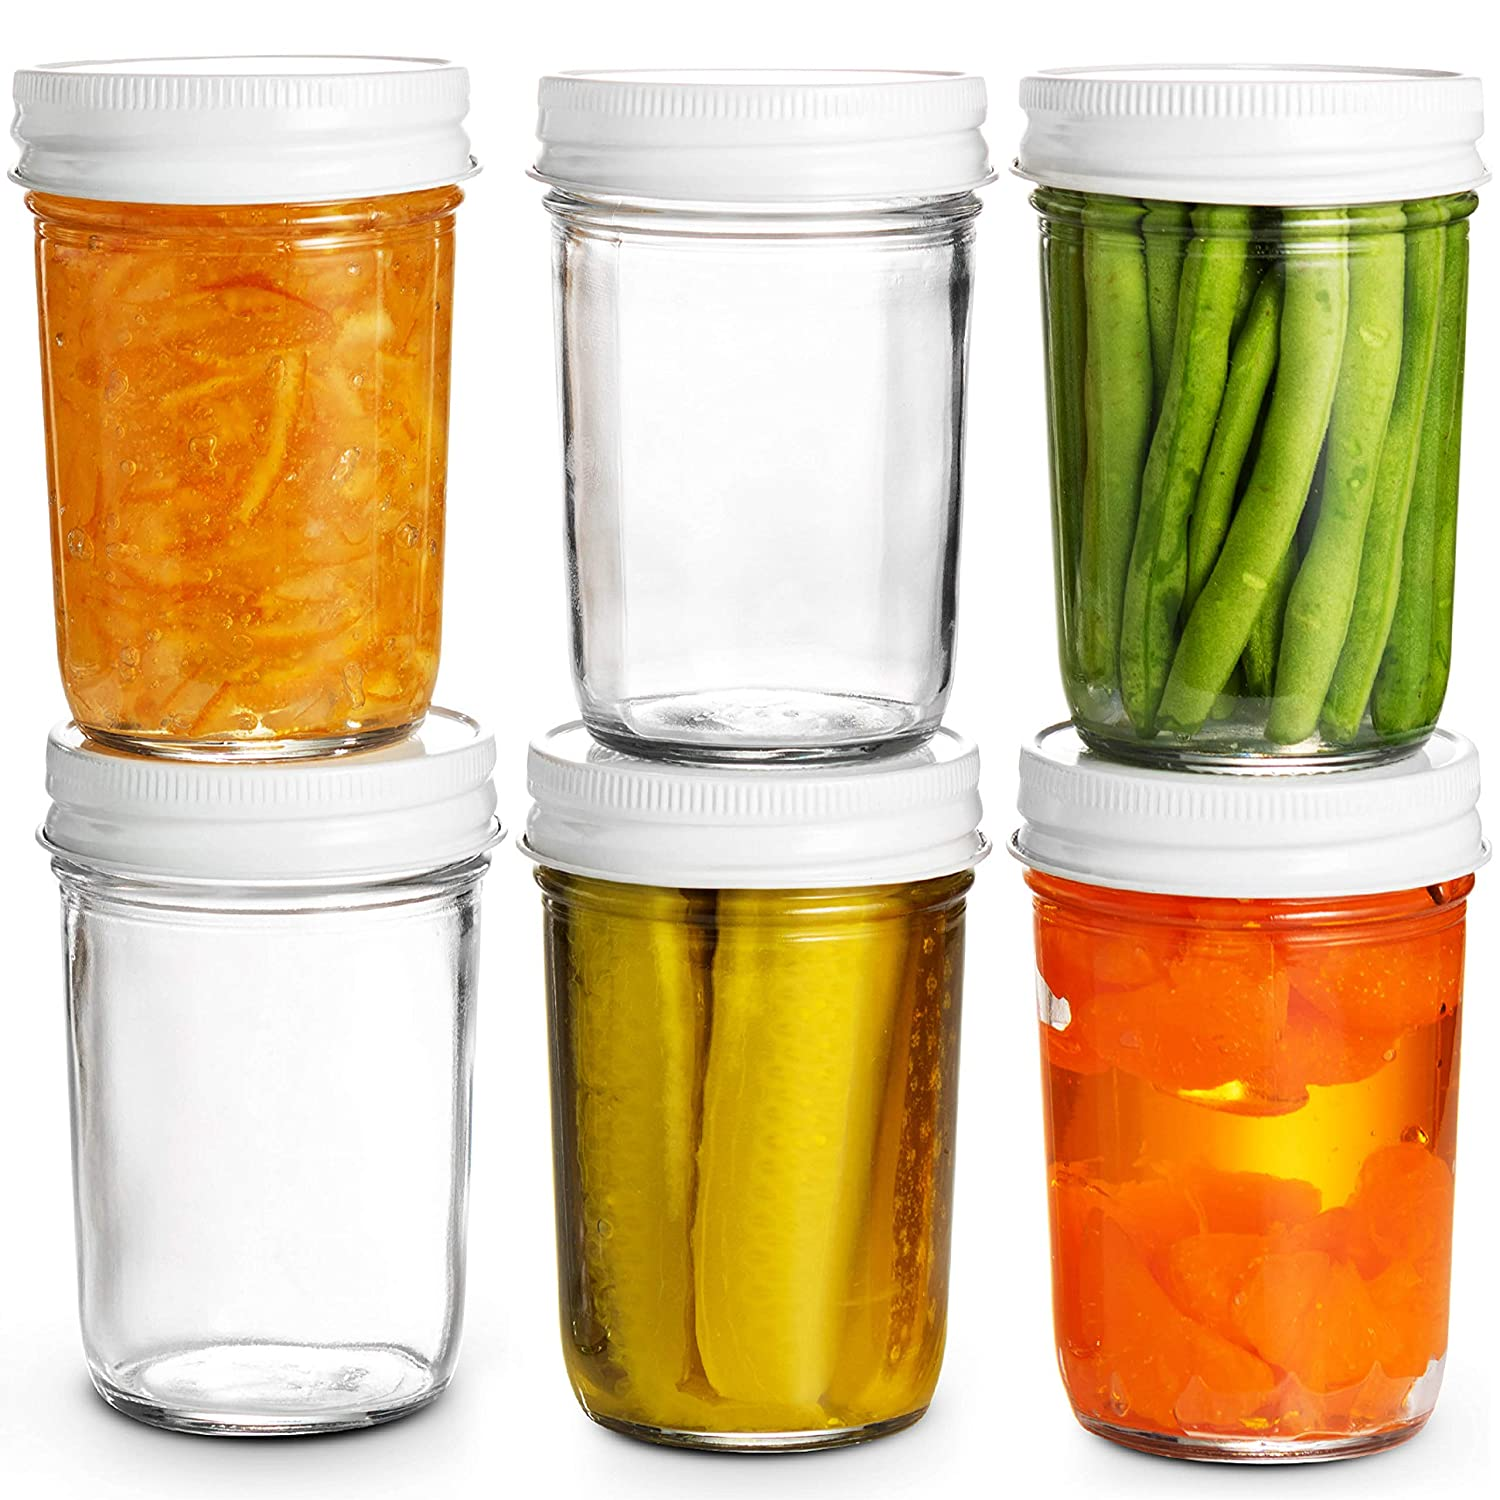 Glass Mason Jars Full Mouth - 8 Ounce - (6 Pack) Glass Jars with Metal Airtight Lids Perfect Meal Prep, Food Storage, Canning, Drinking Jars, for Jelly, Jam, Dry Food, Spices, Herbs, Salads, Yogurt,